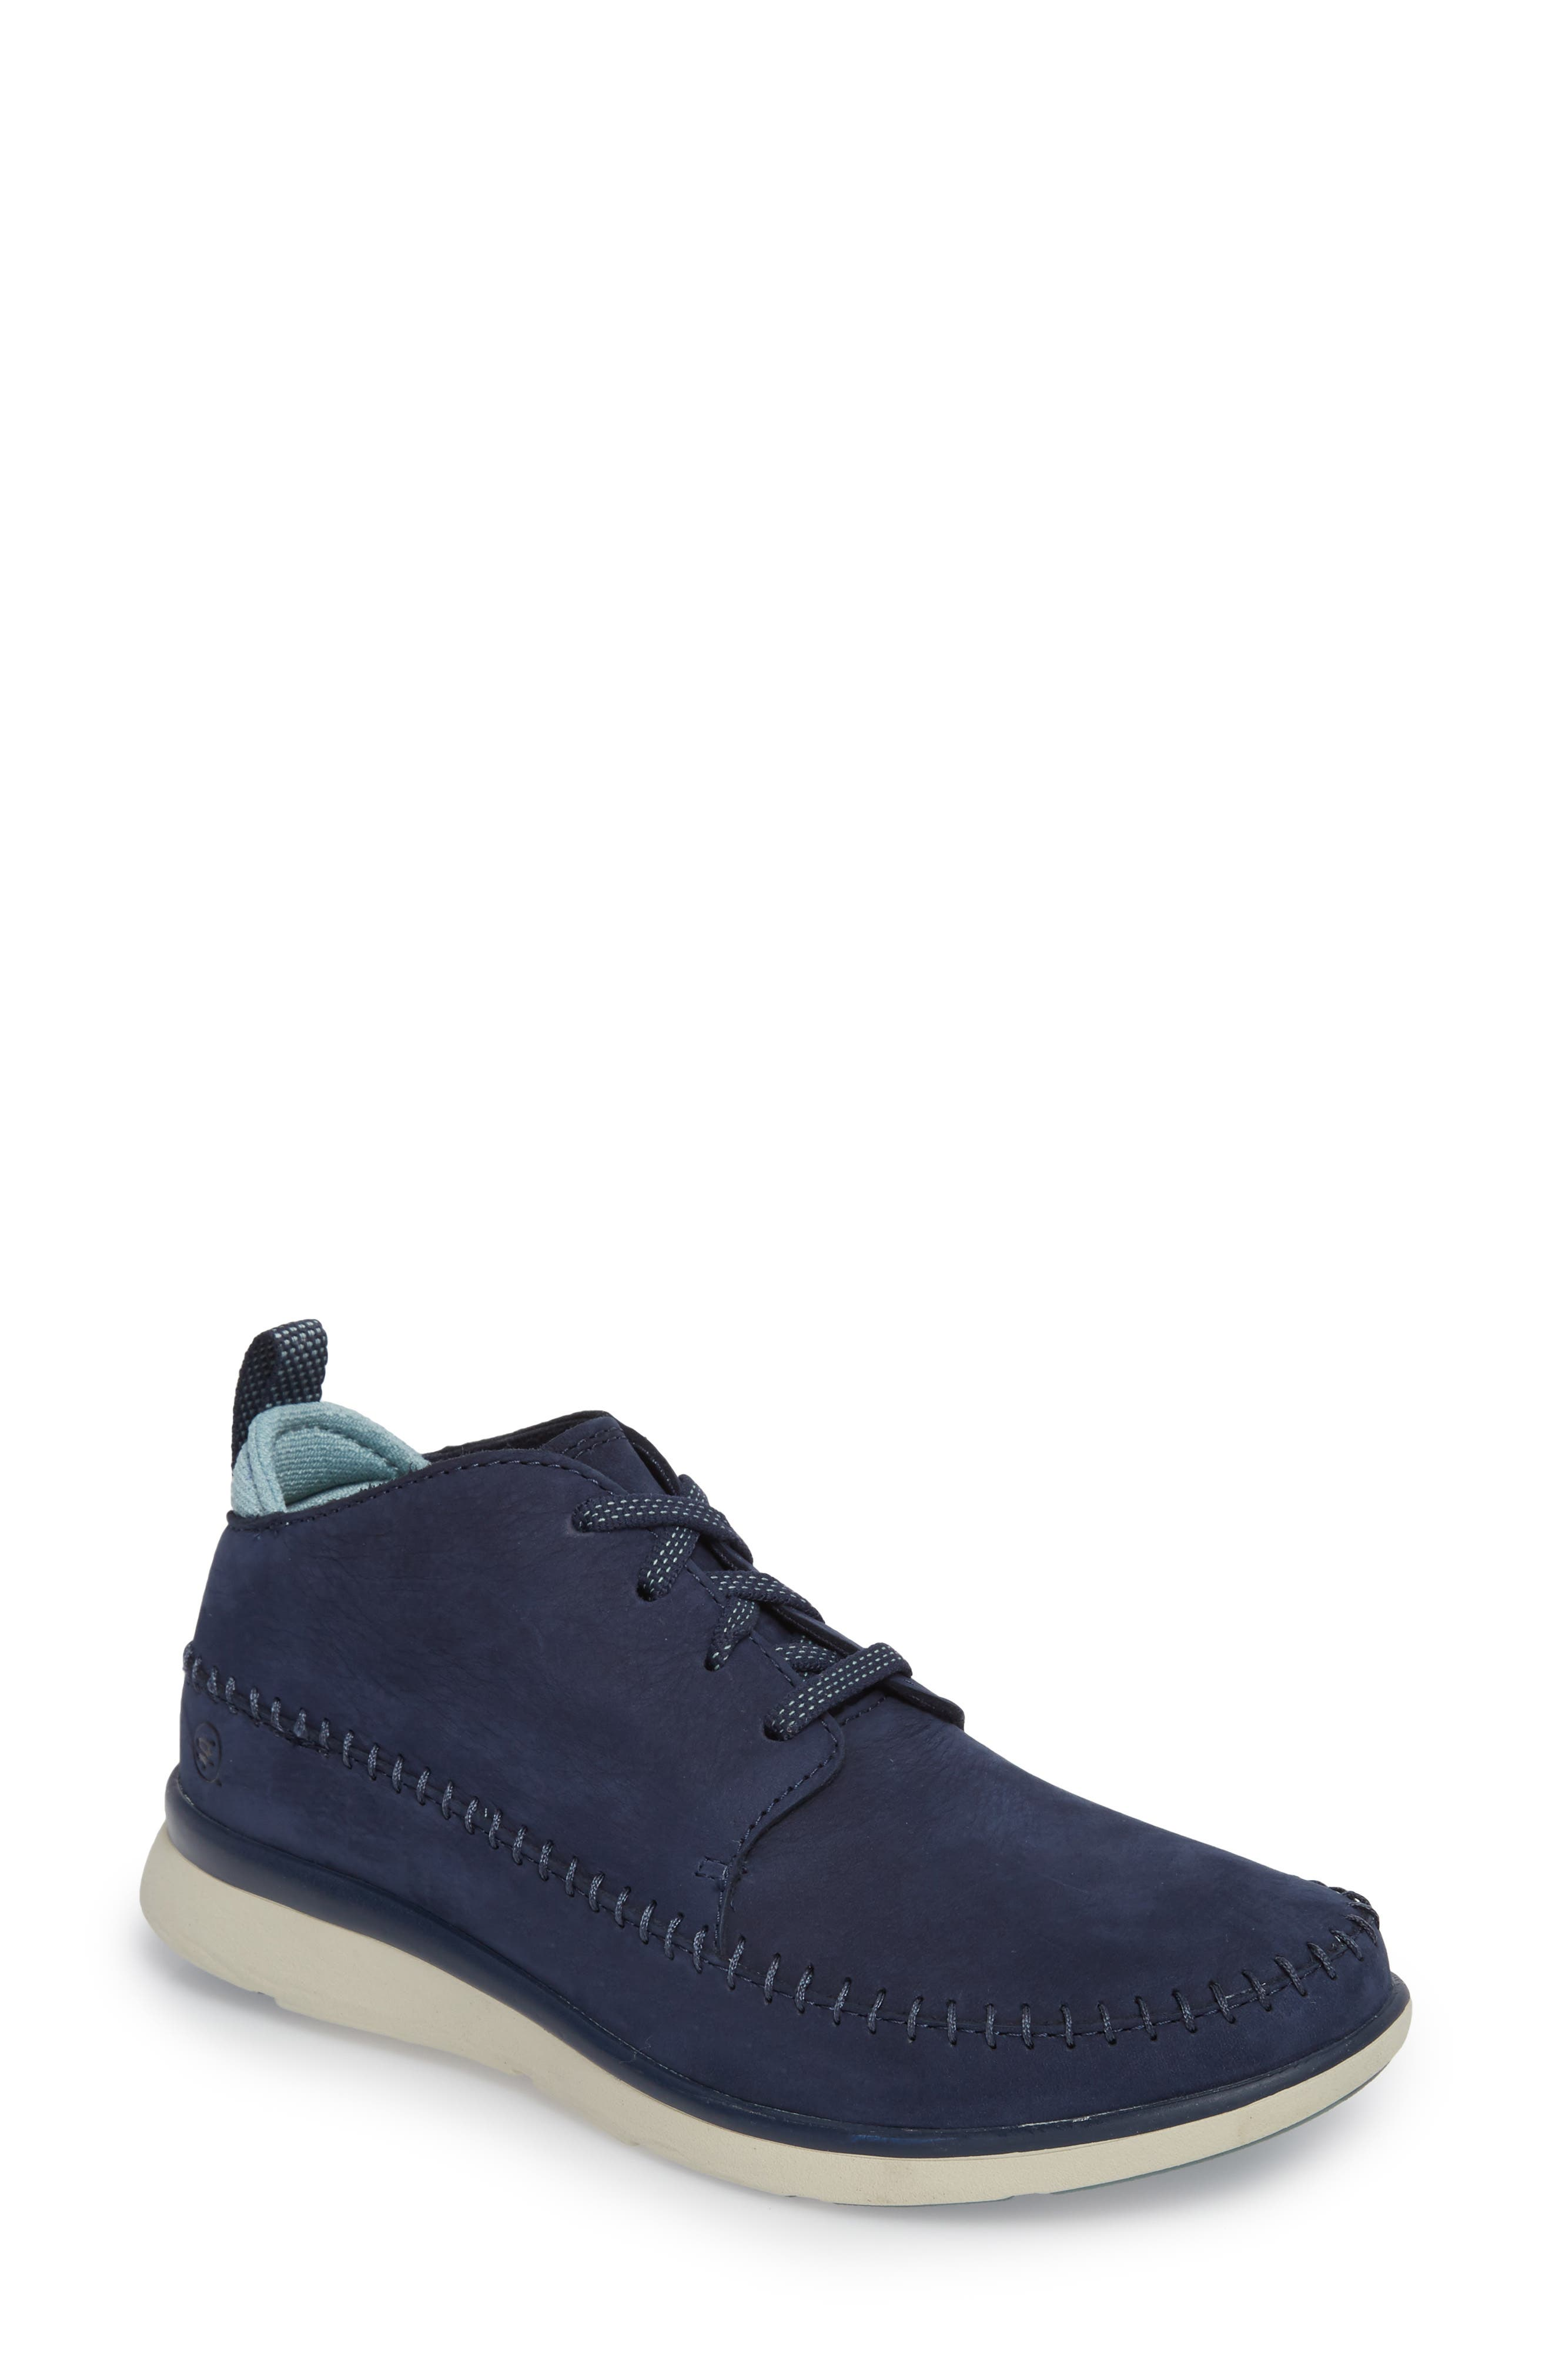 Olympia Lace-Up Sneaker,                         Main,                         color, Blue Nubuck